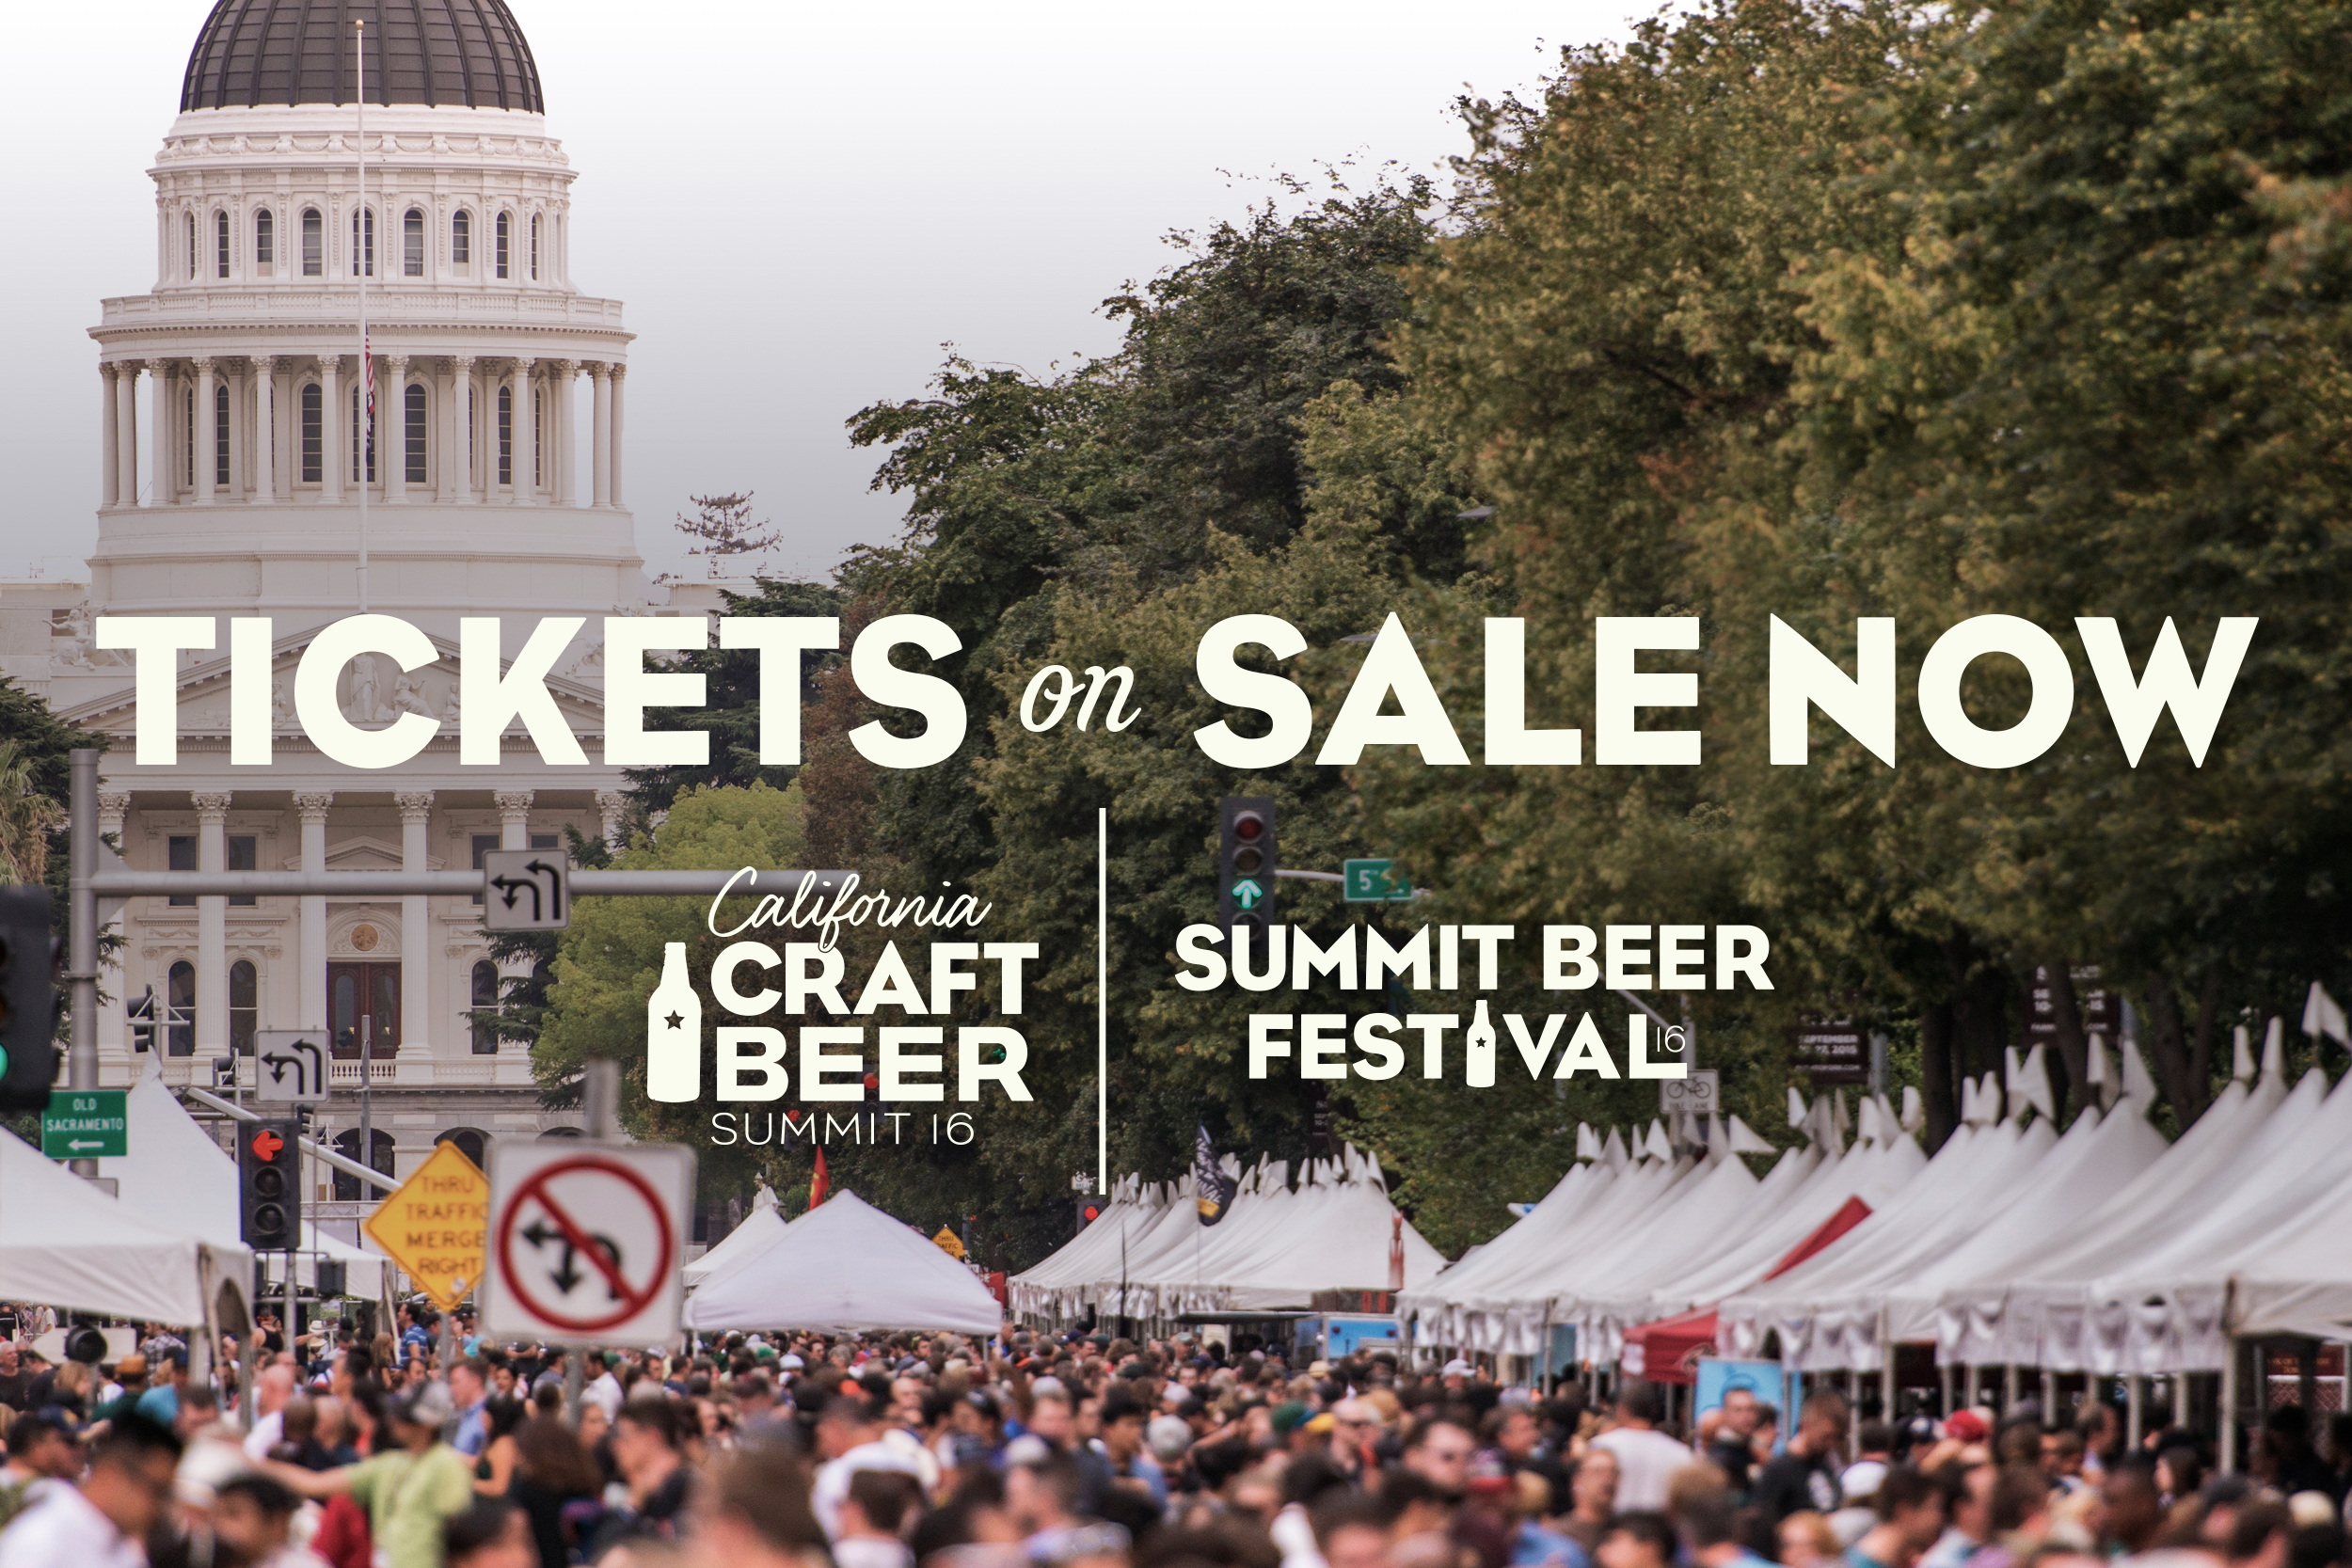 Tickets for 2016 California Craft Beer Summit and Beer Festival Now on Sale